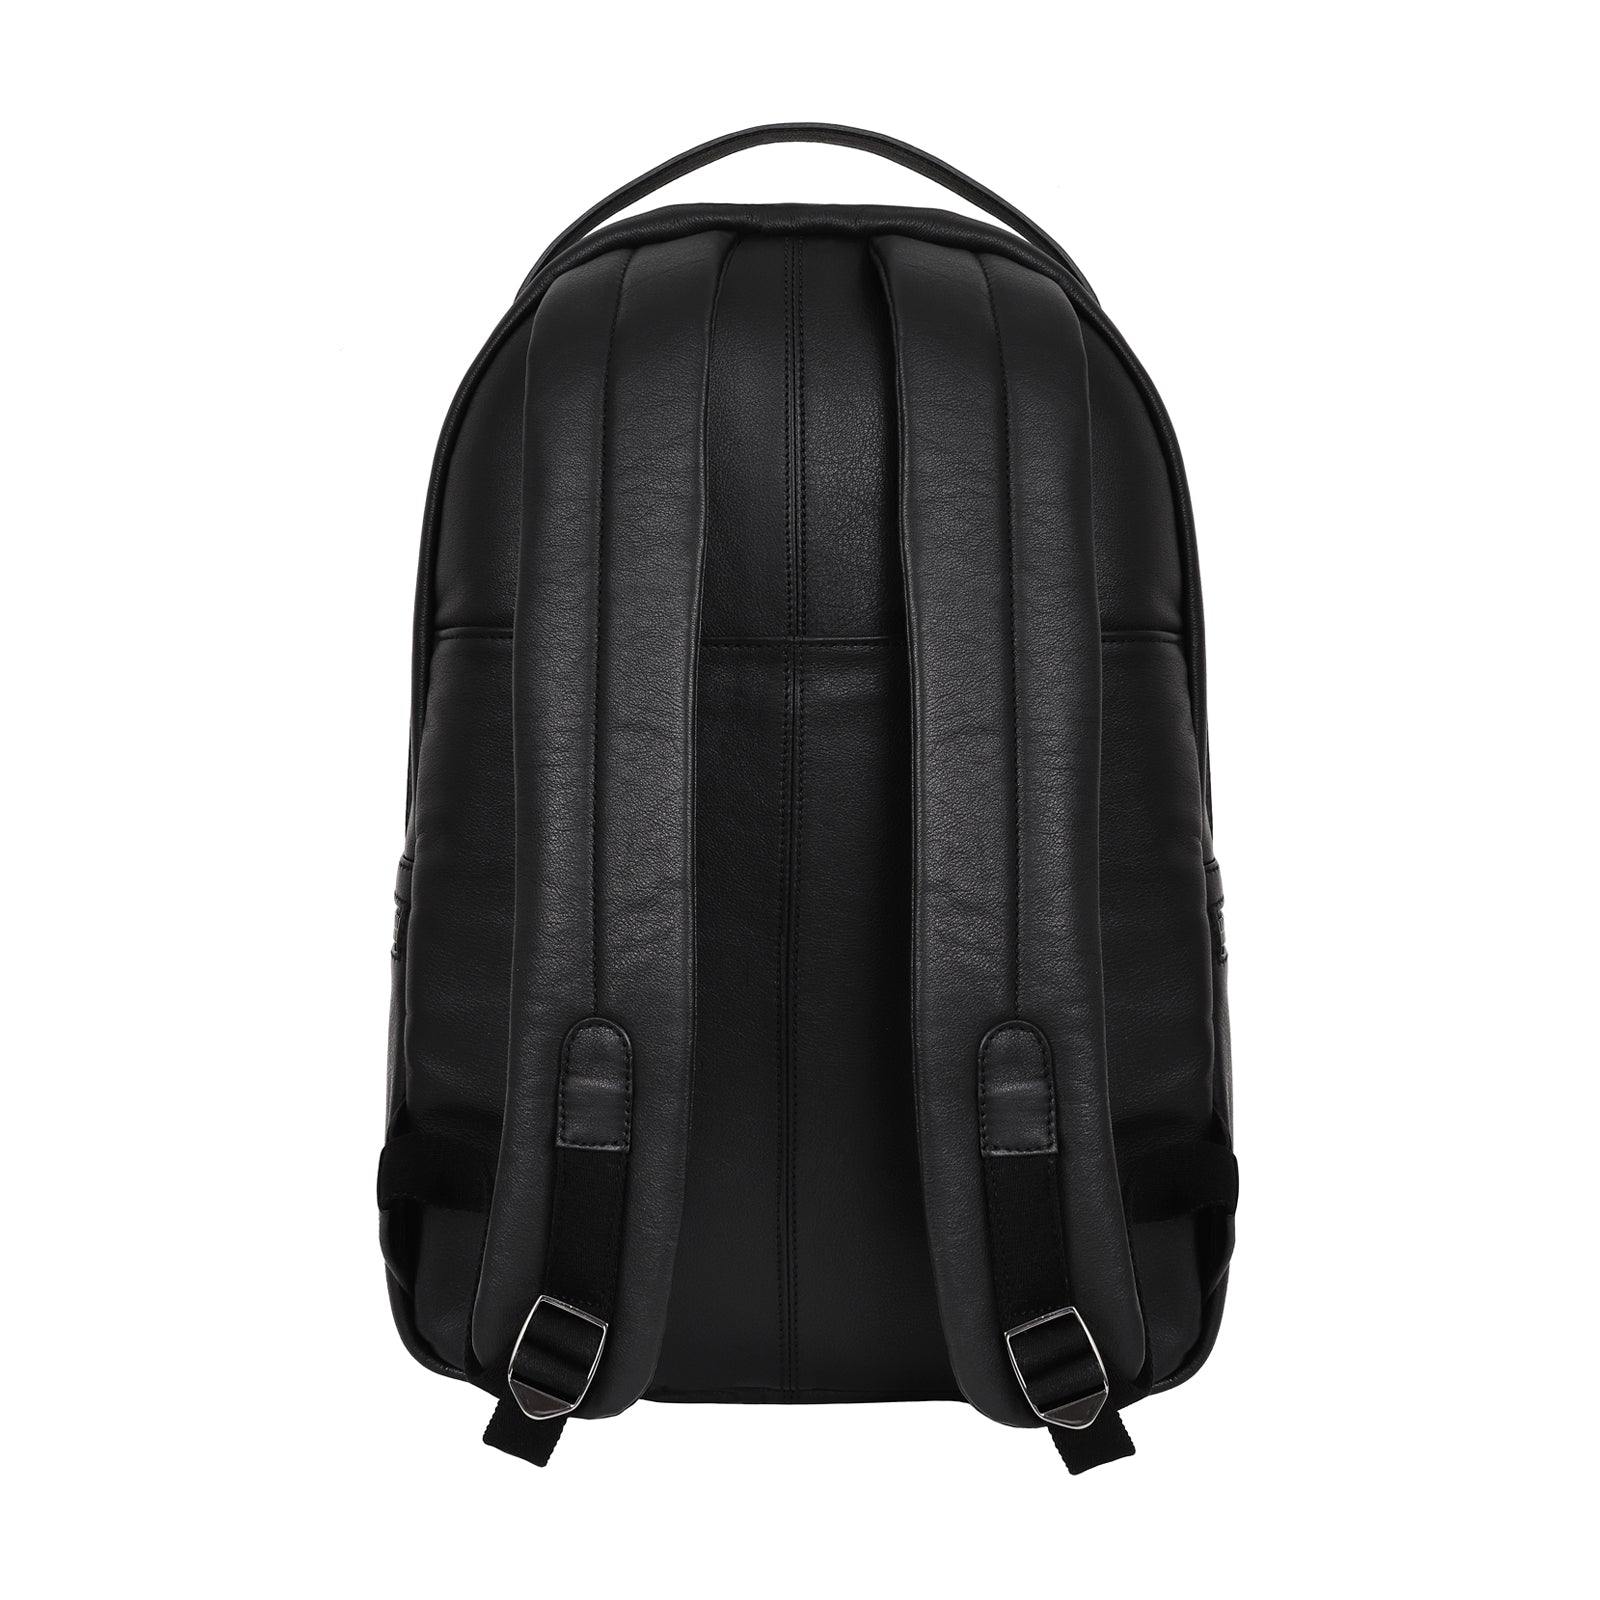 The Oversized City Backpack Limited Edition